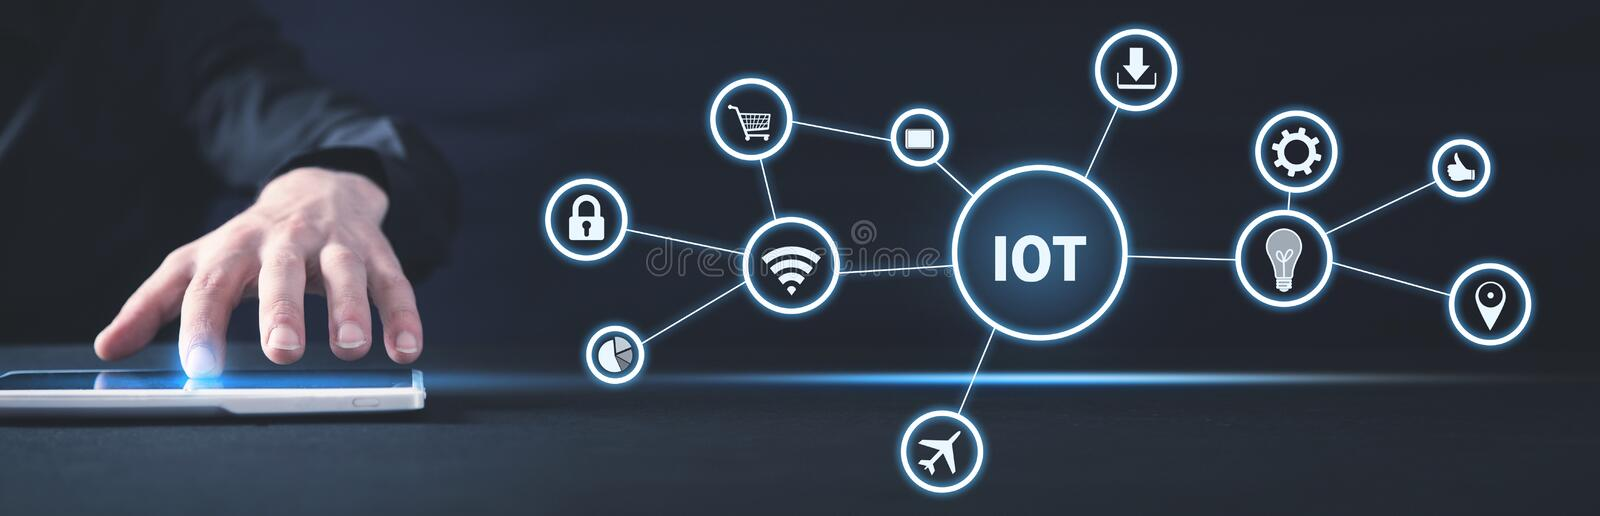 Internet Of Things. Internet, Technology, Business stock images